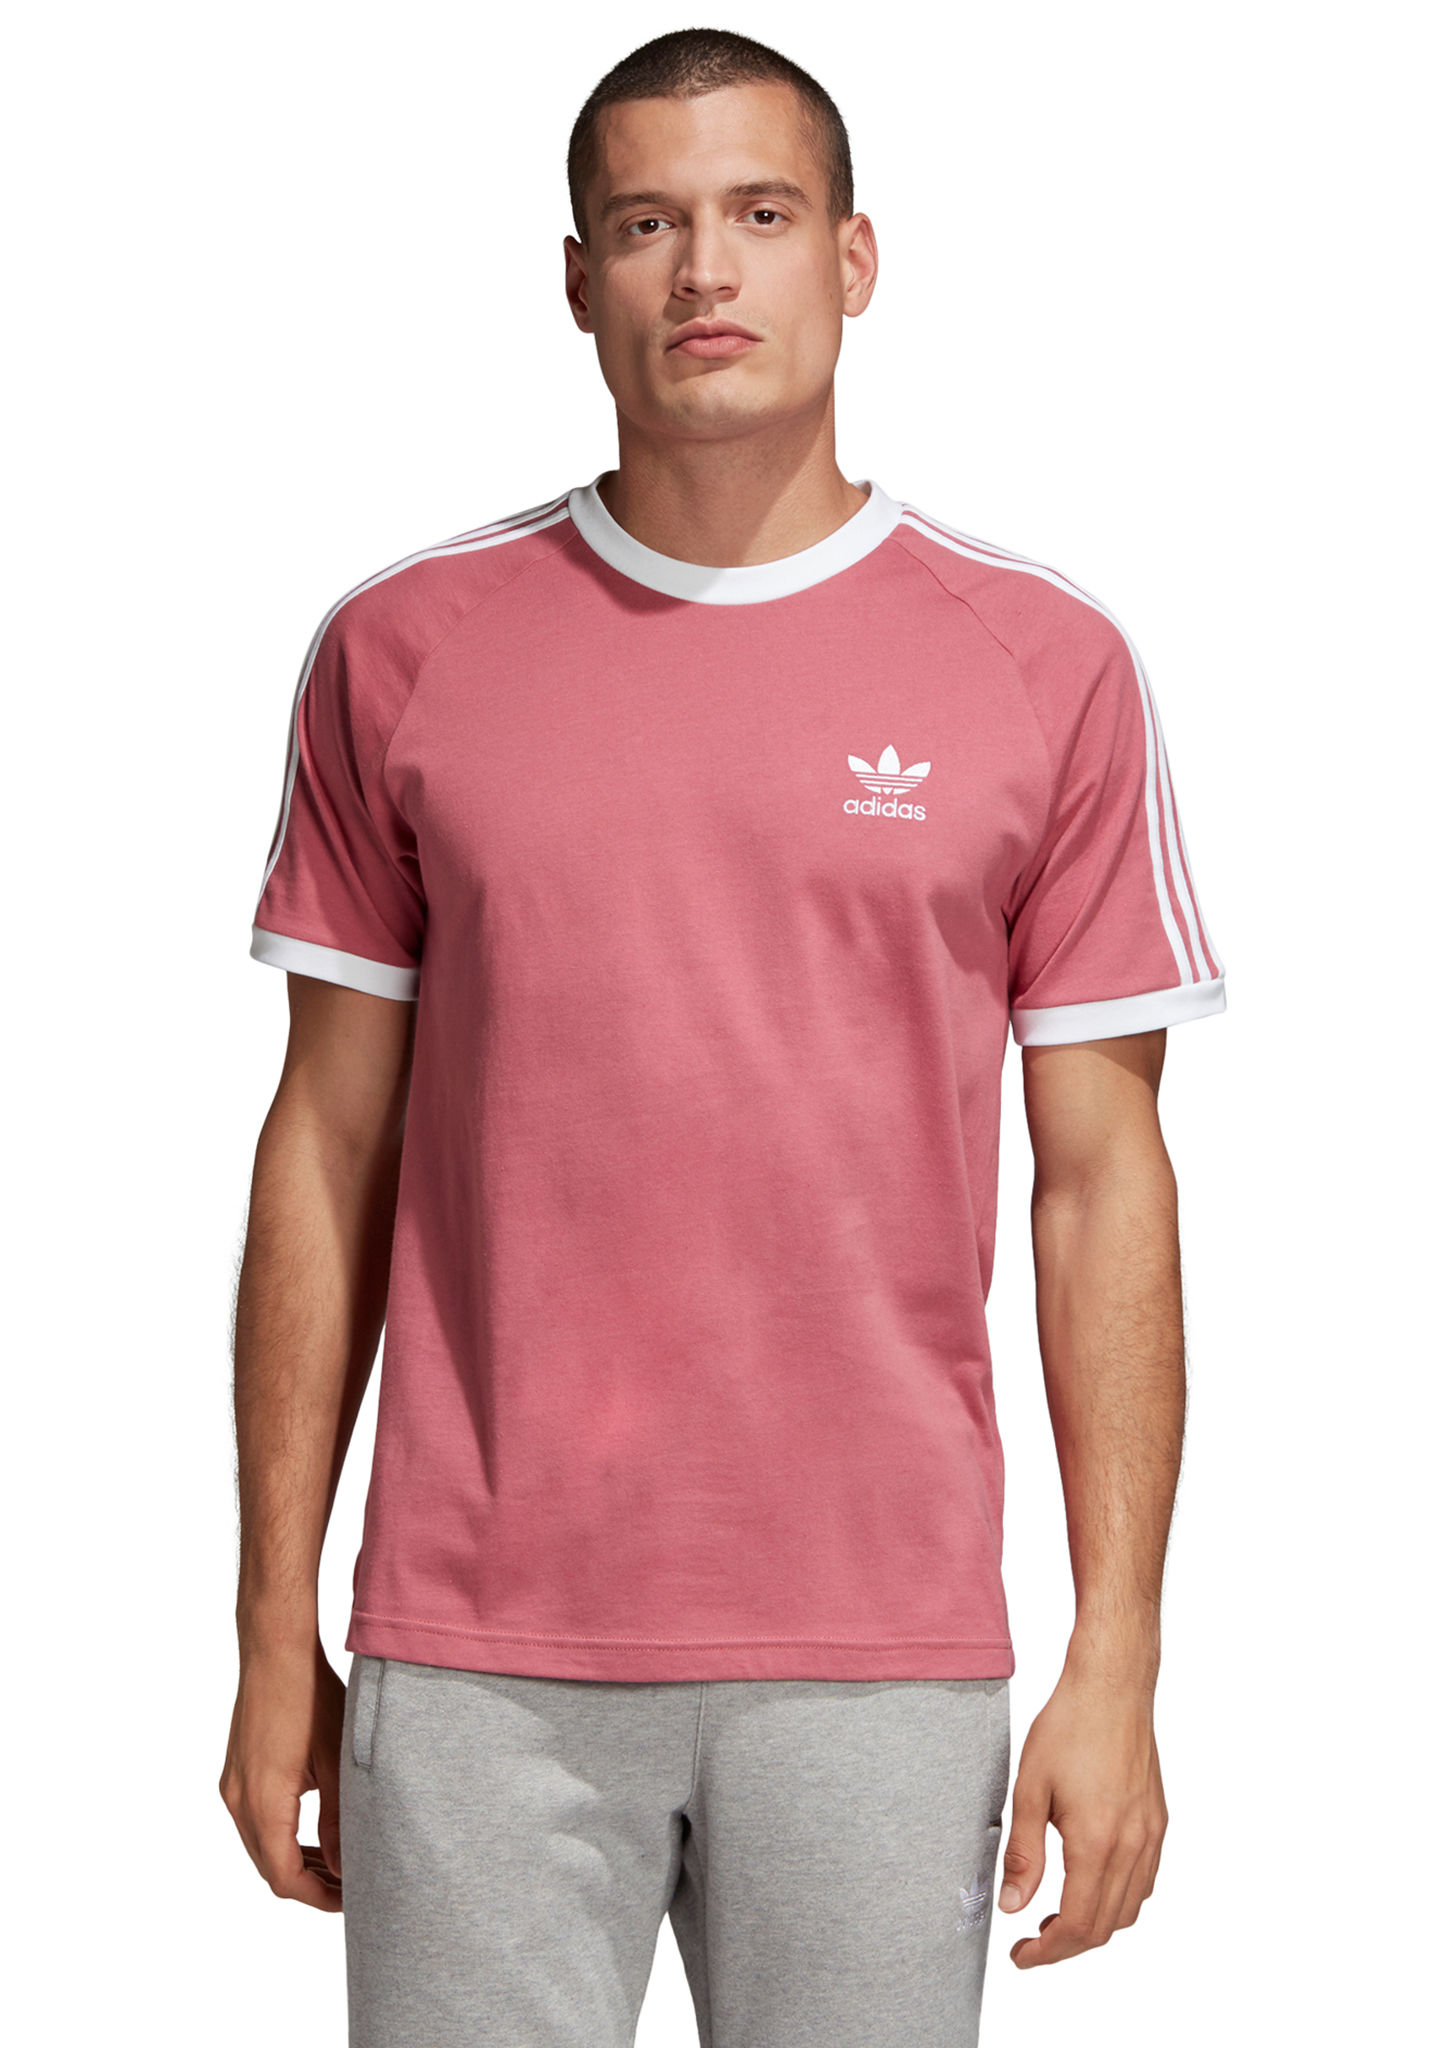 3f47fc7891 ADIDAS ORIGINALS 3-Stripes - T-Shirt for Men - Red - Planet Sports